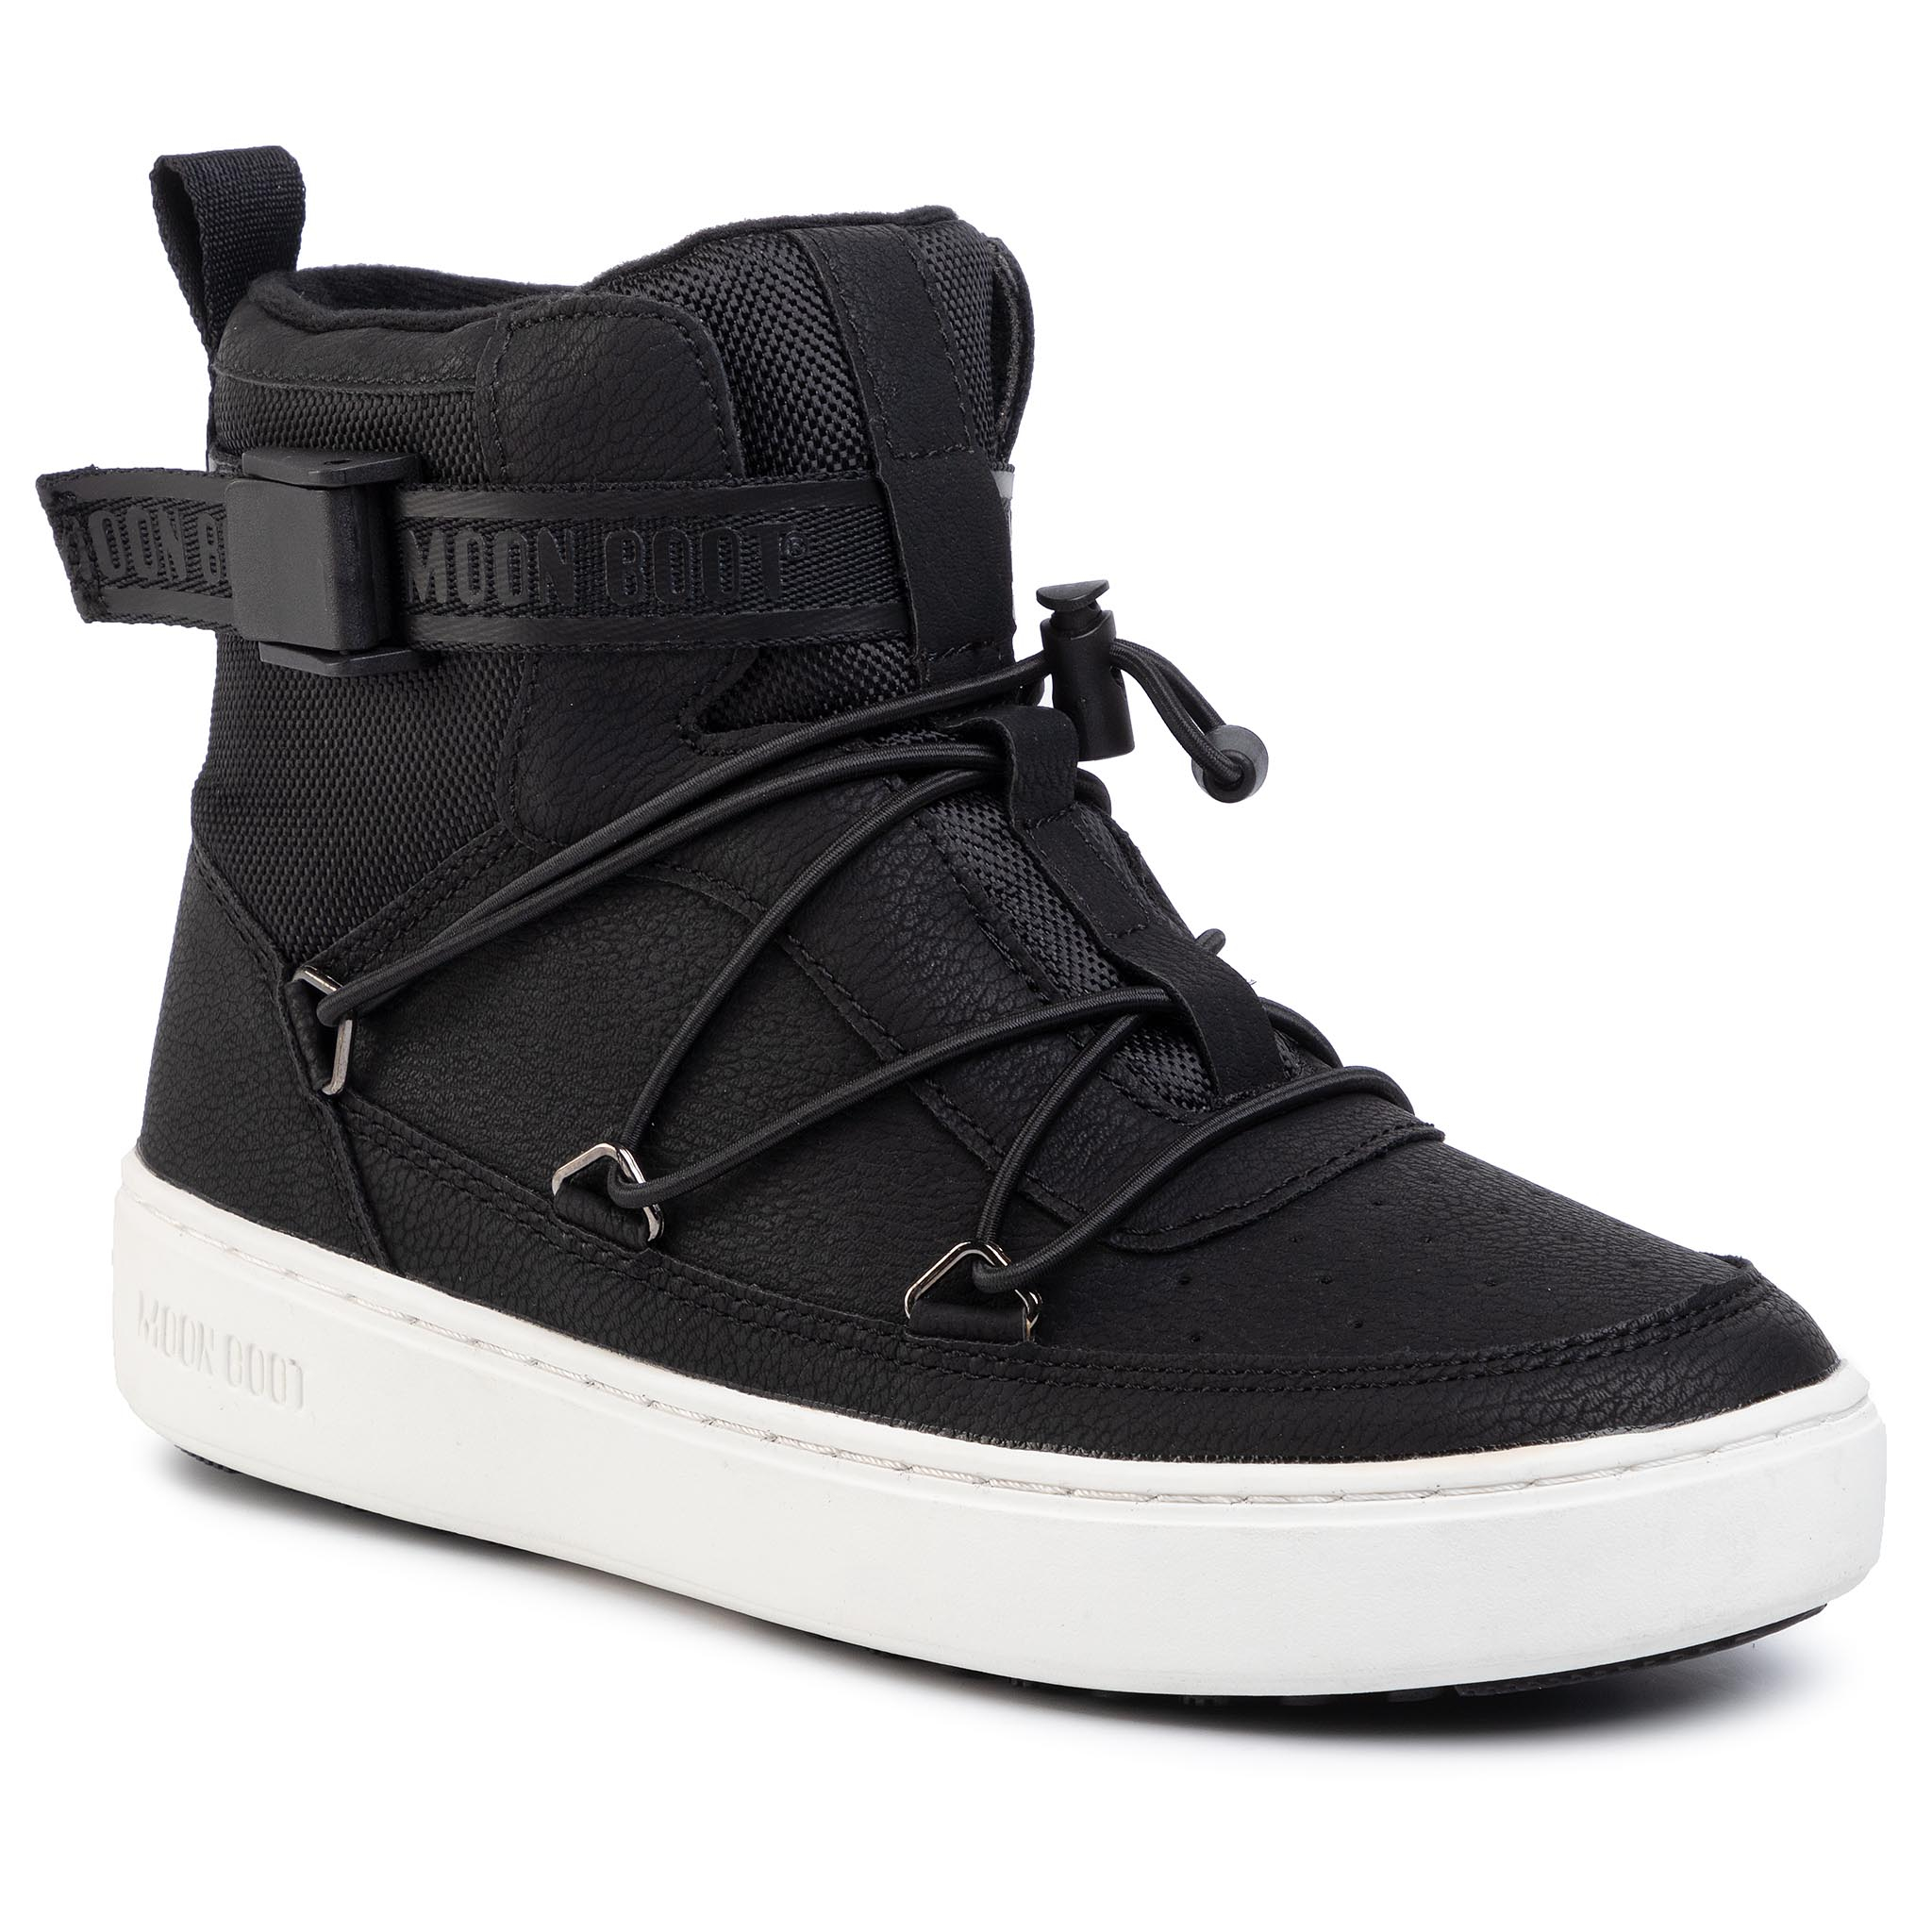 Ghete MOON BOOT - Pulse Jr Boy New York 340611001 D Black